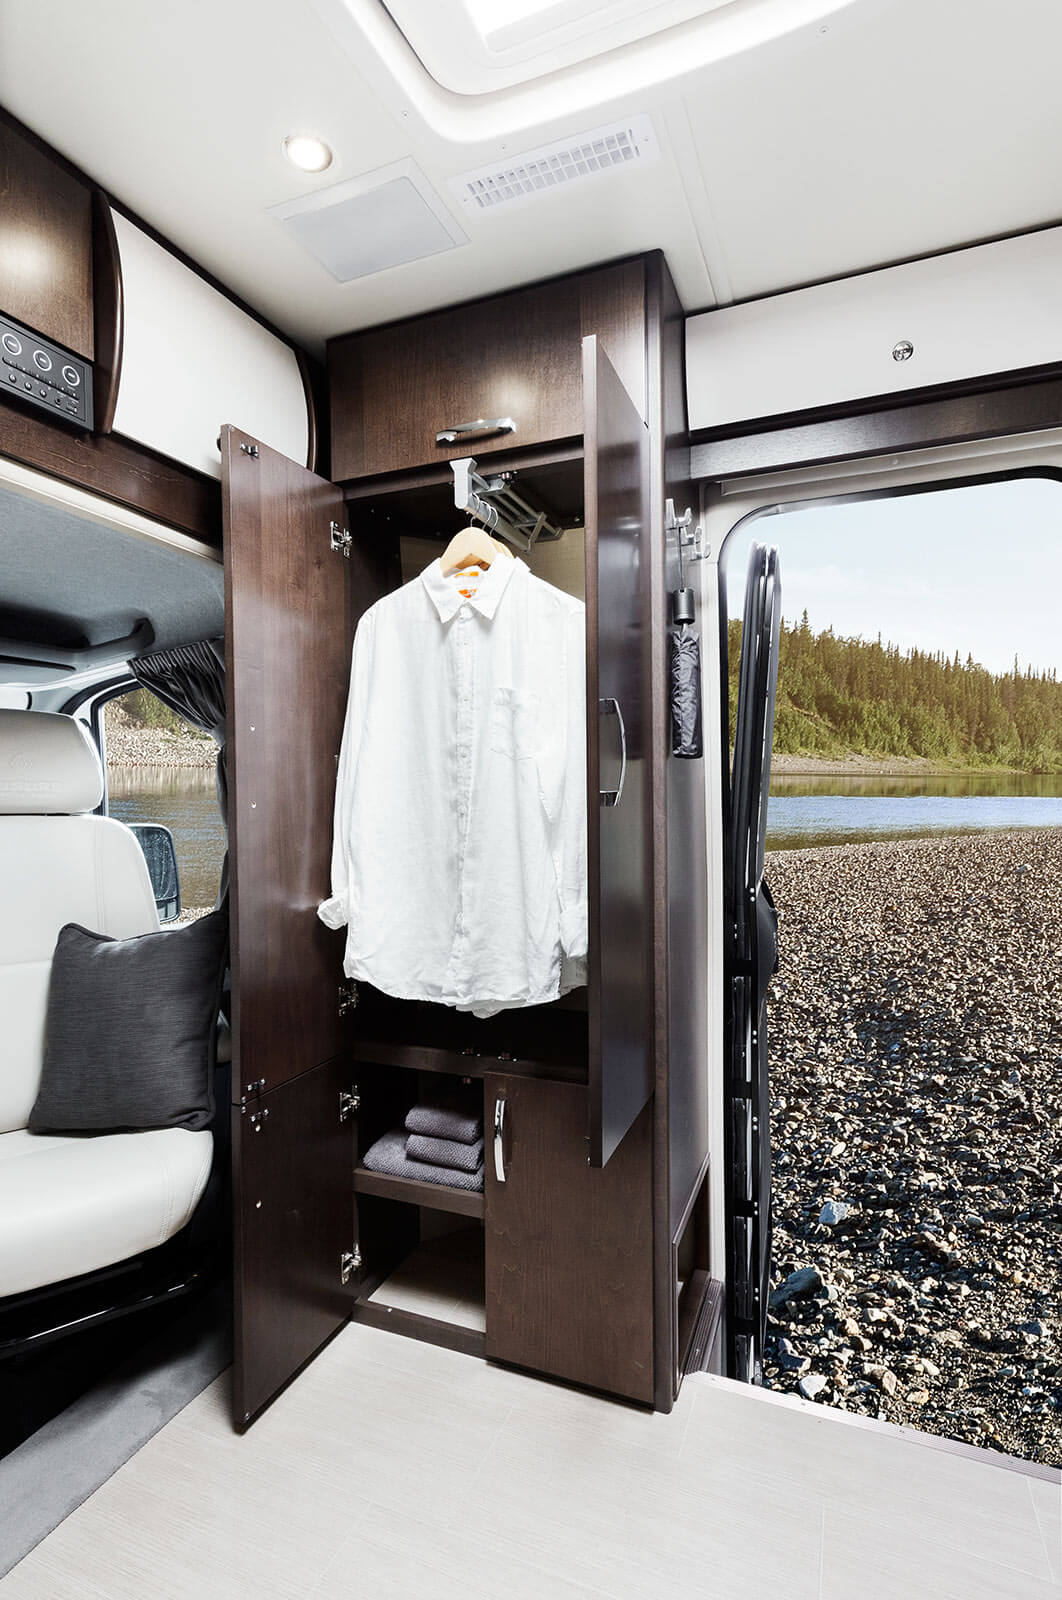 Mercedes Benz Rv >> Leisure Travel Vans Transforms The Open Road With The All-New 2016 Unity FX | Roaming Times